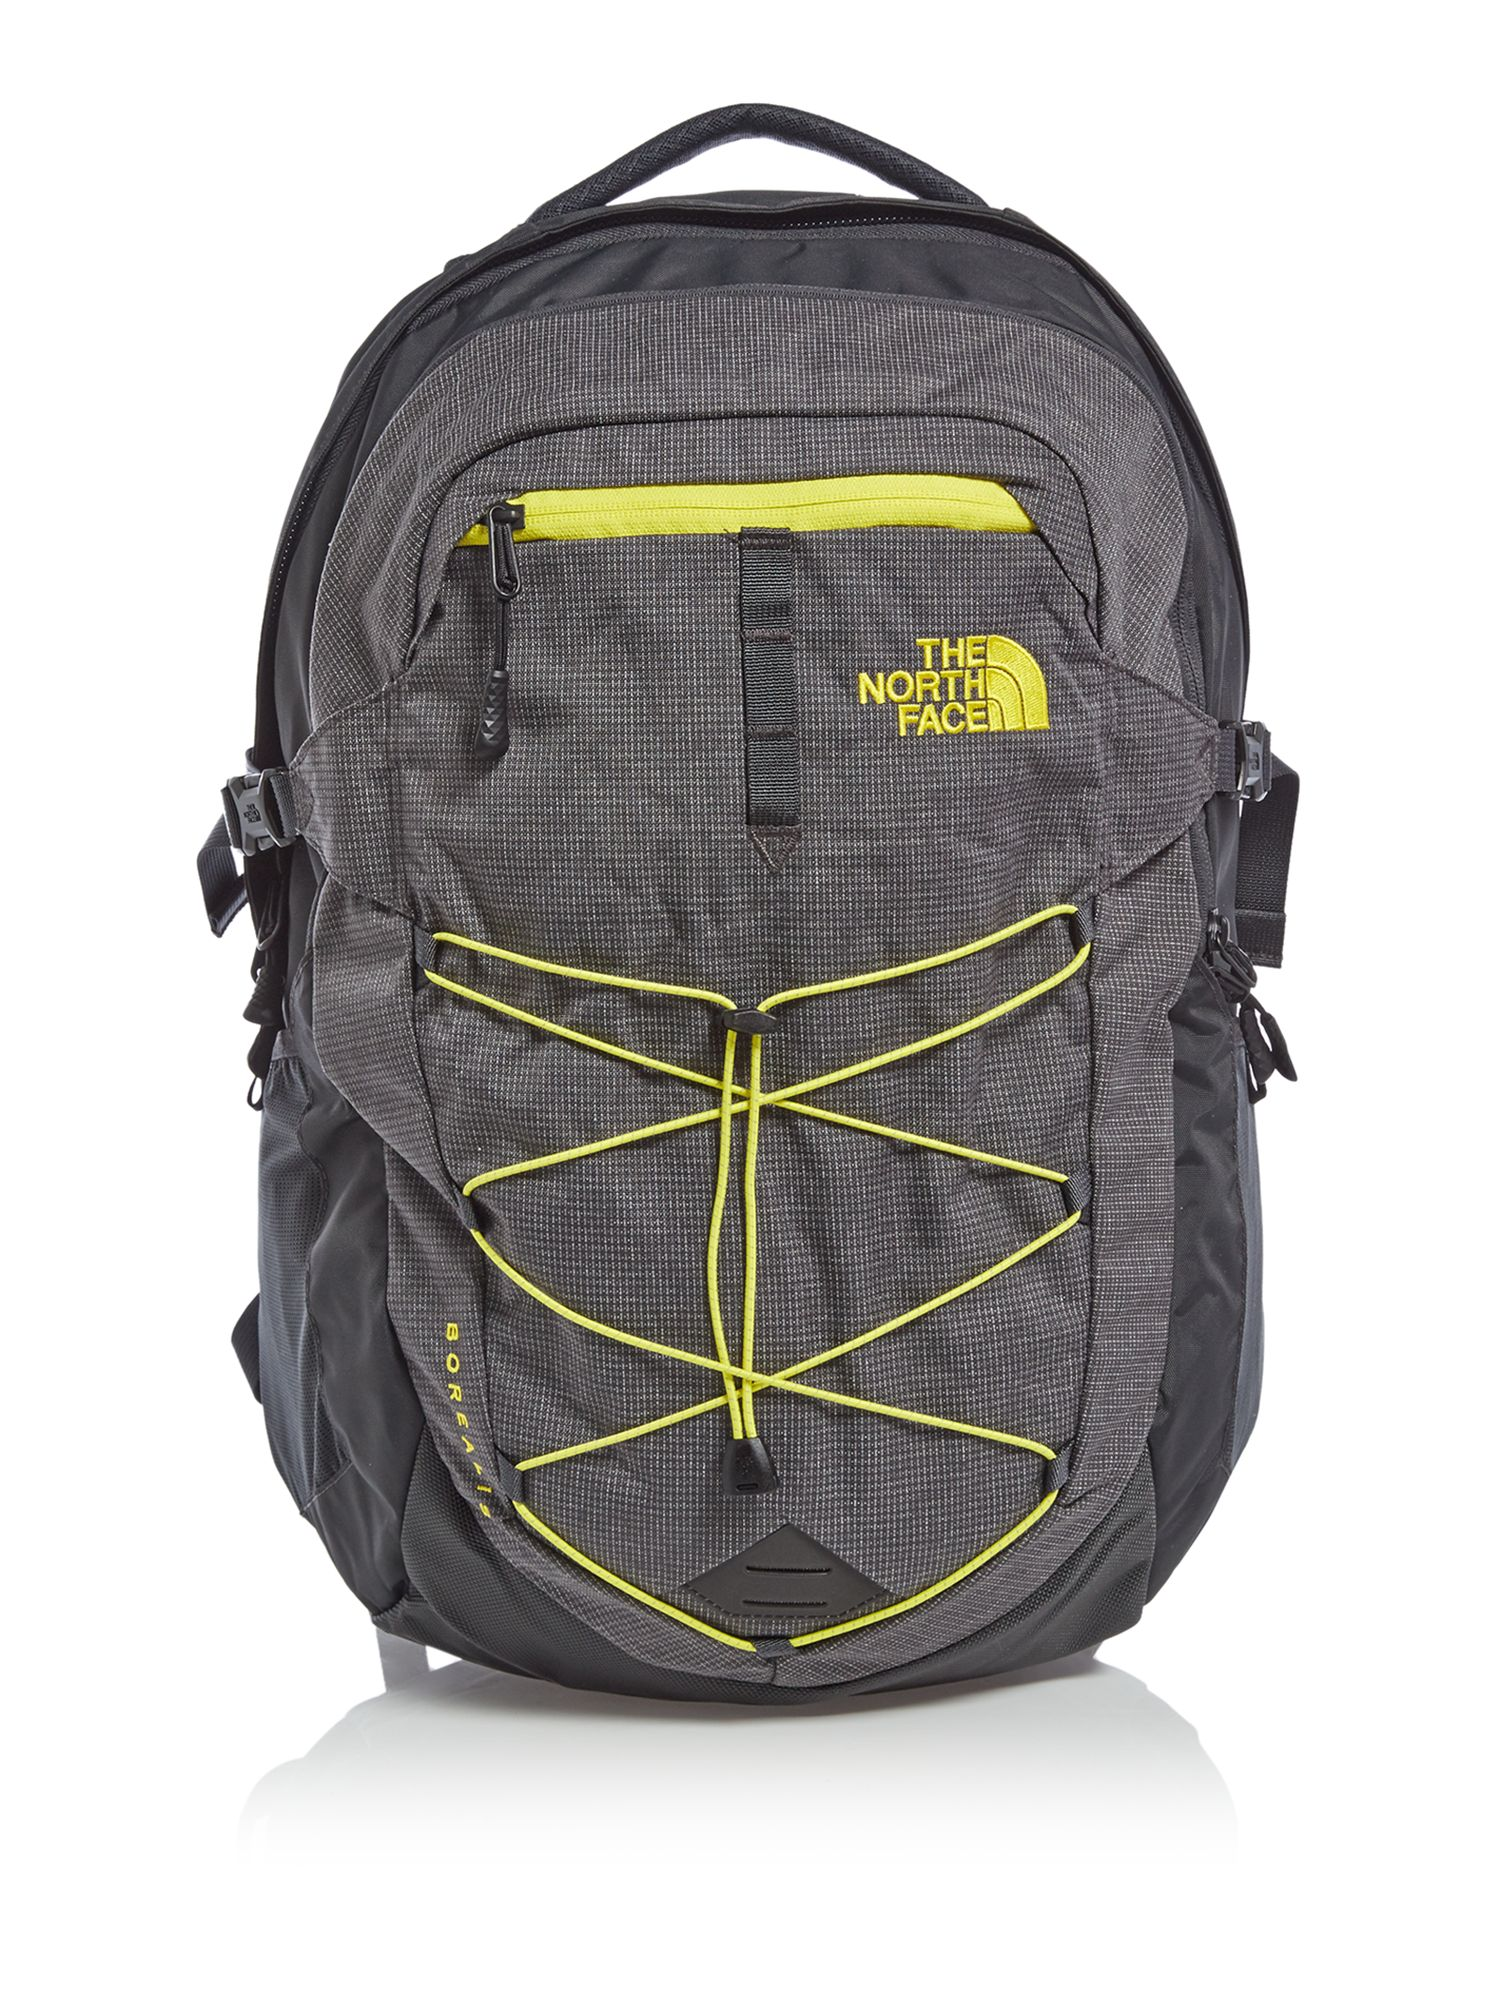 The North Face BOREALIS, Charcoal